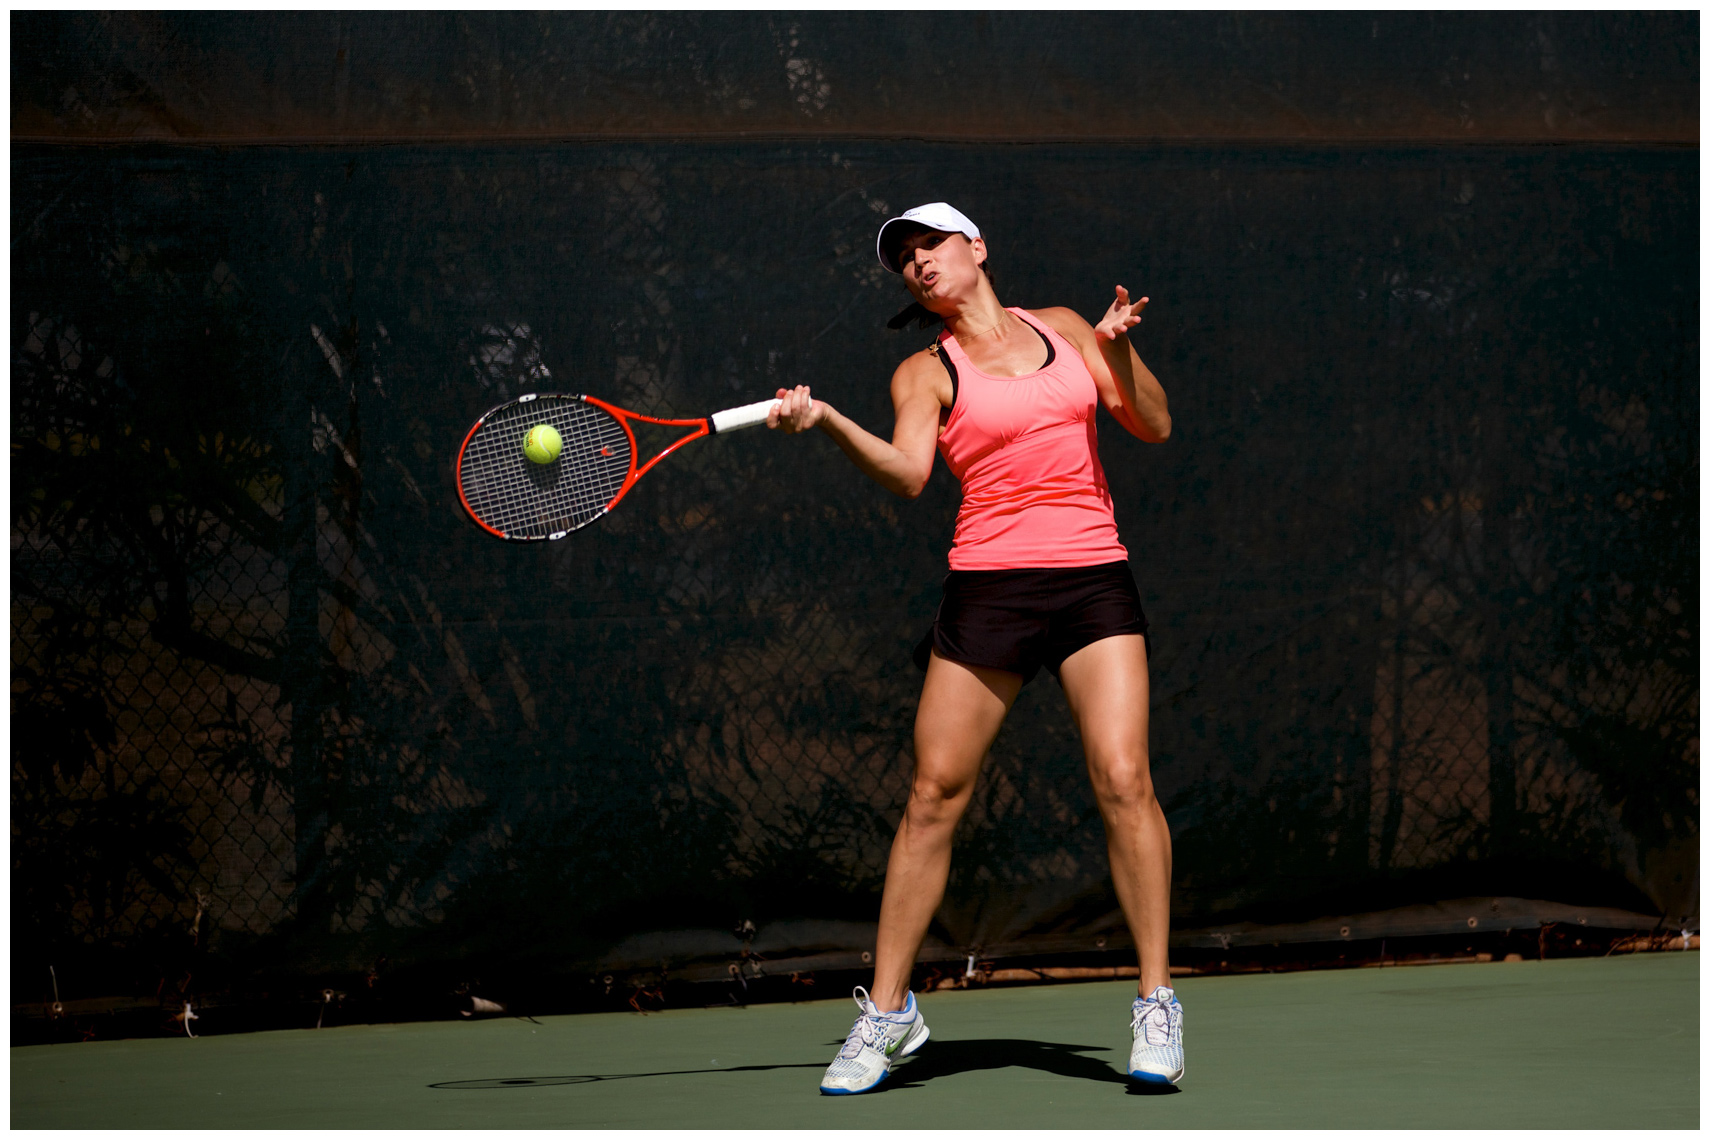 amateur-tennis-tournament-forehand-b-backlit-mercedes-benz-usa